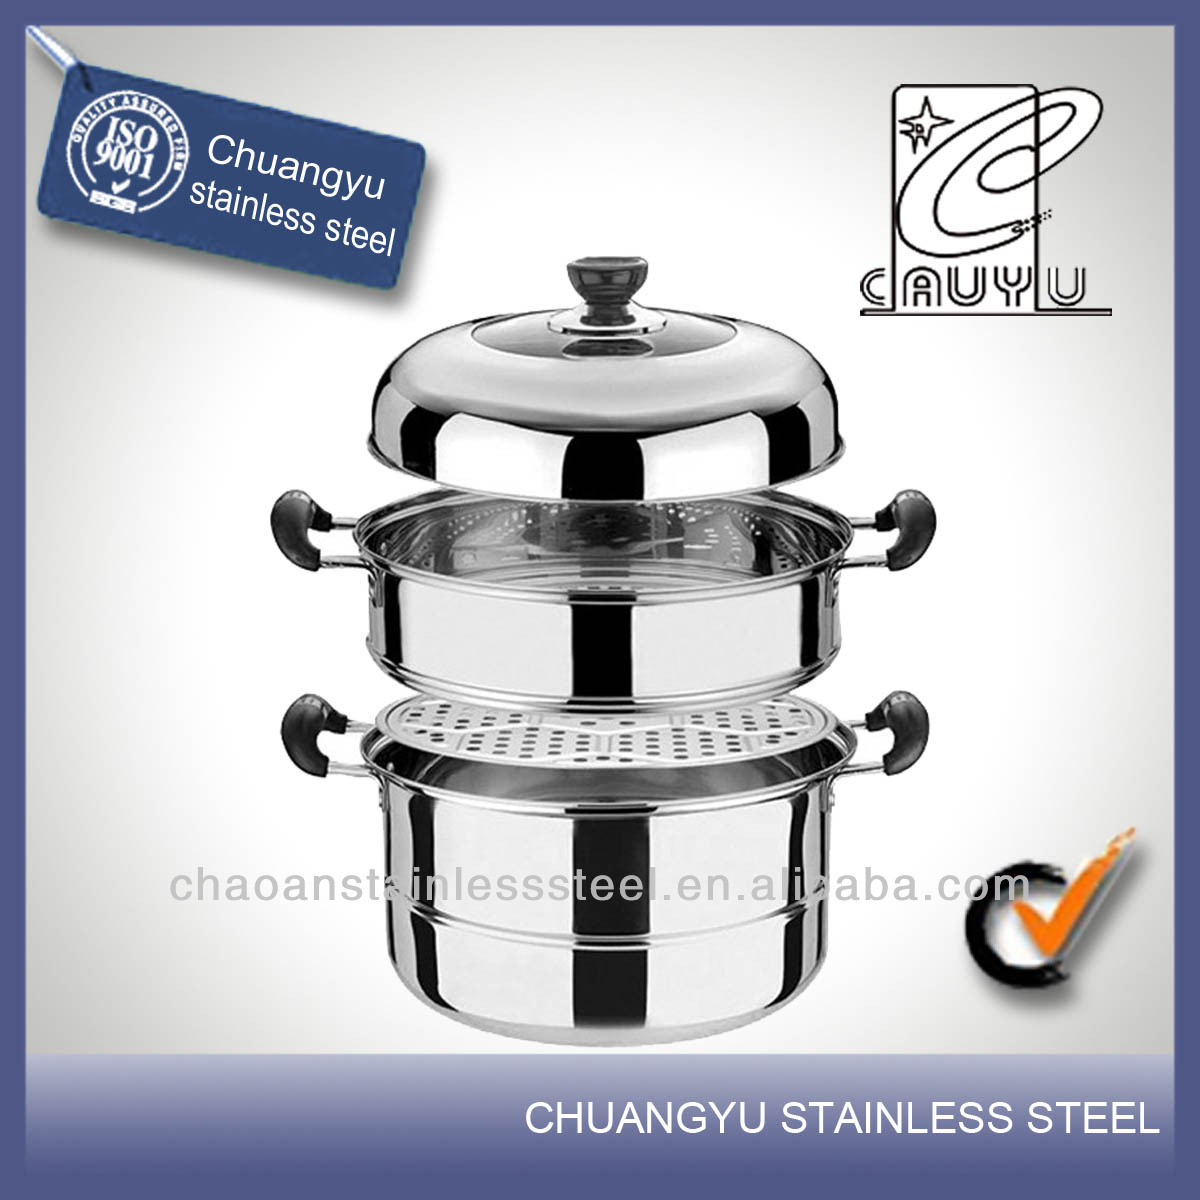 Stainless steel high quality dhokla steamer on sale